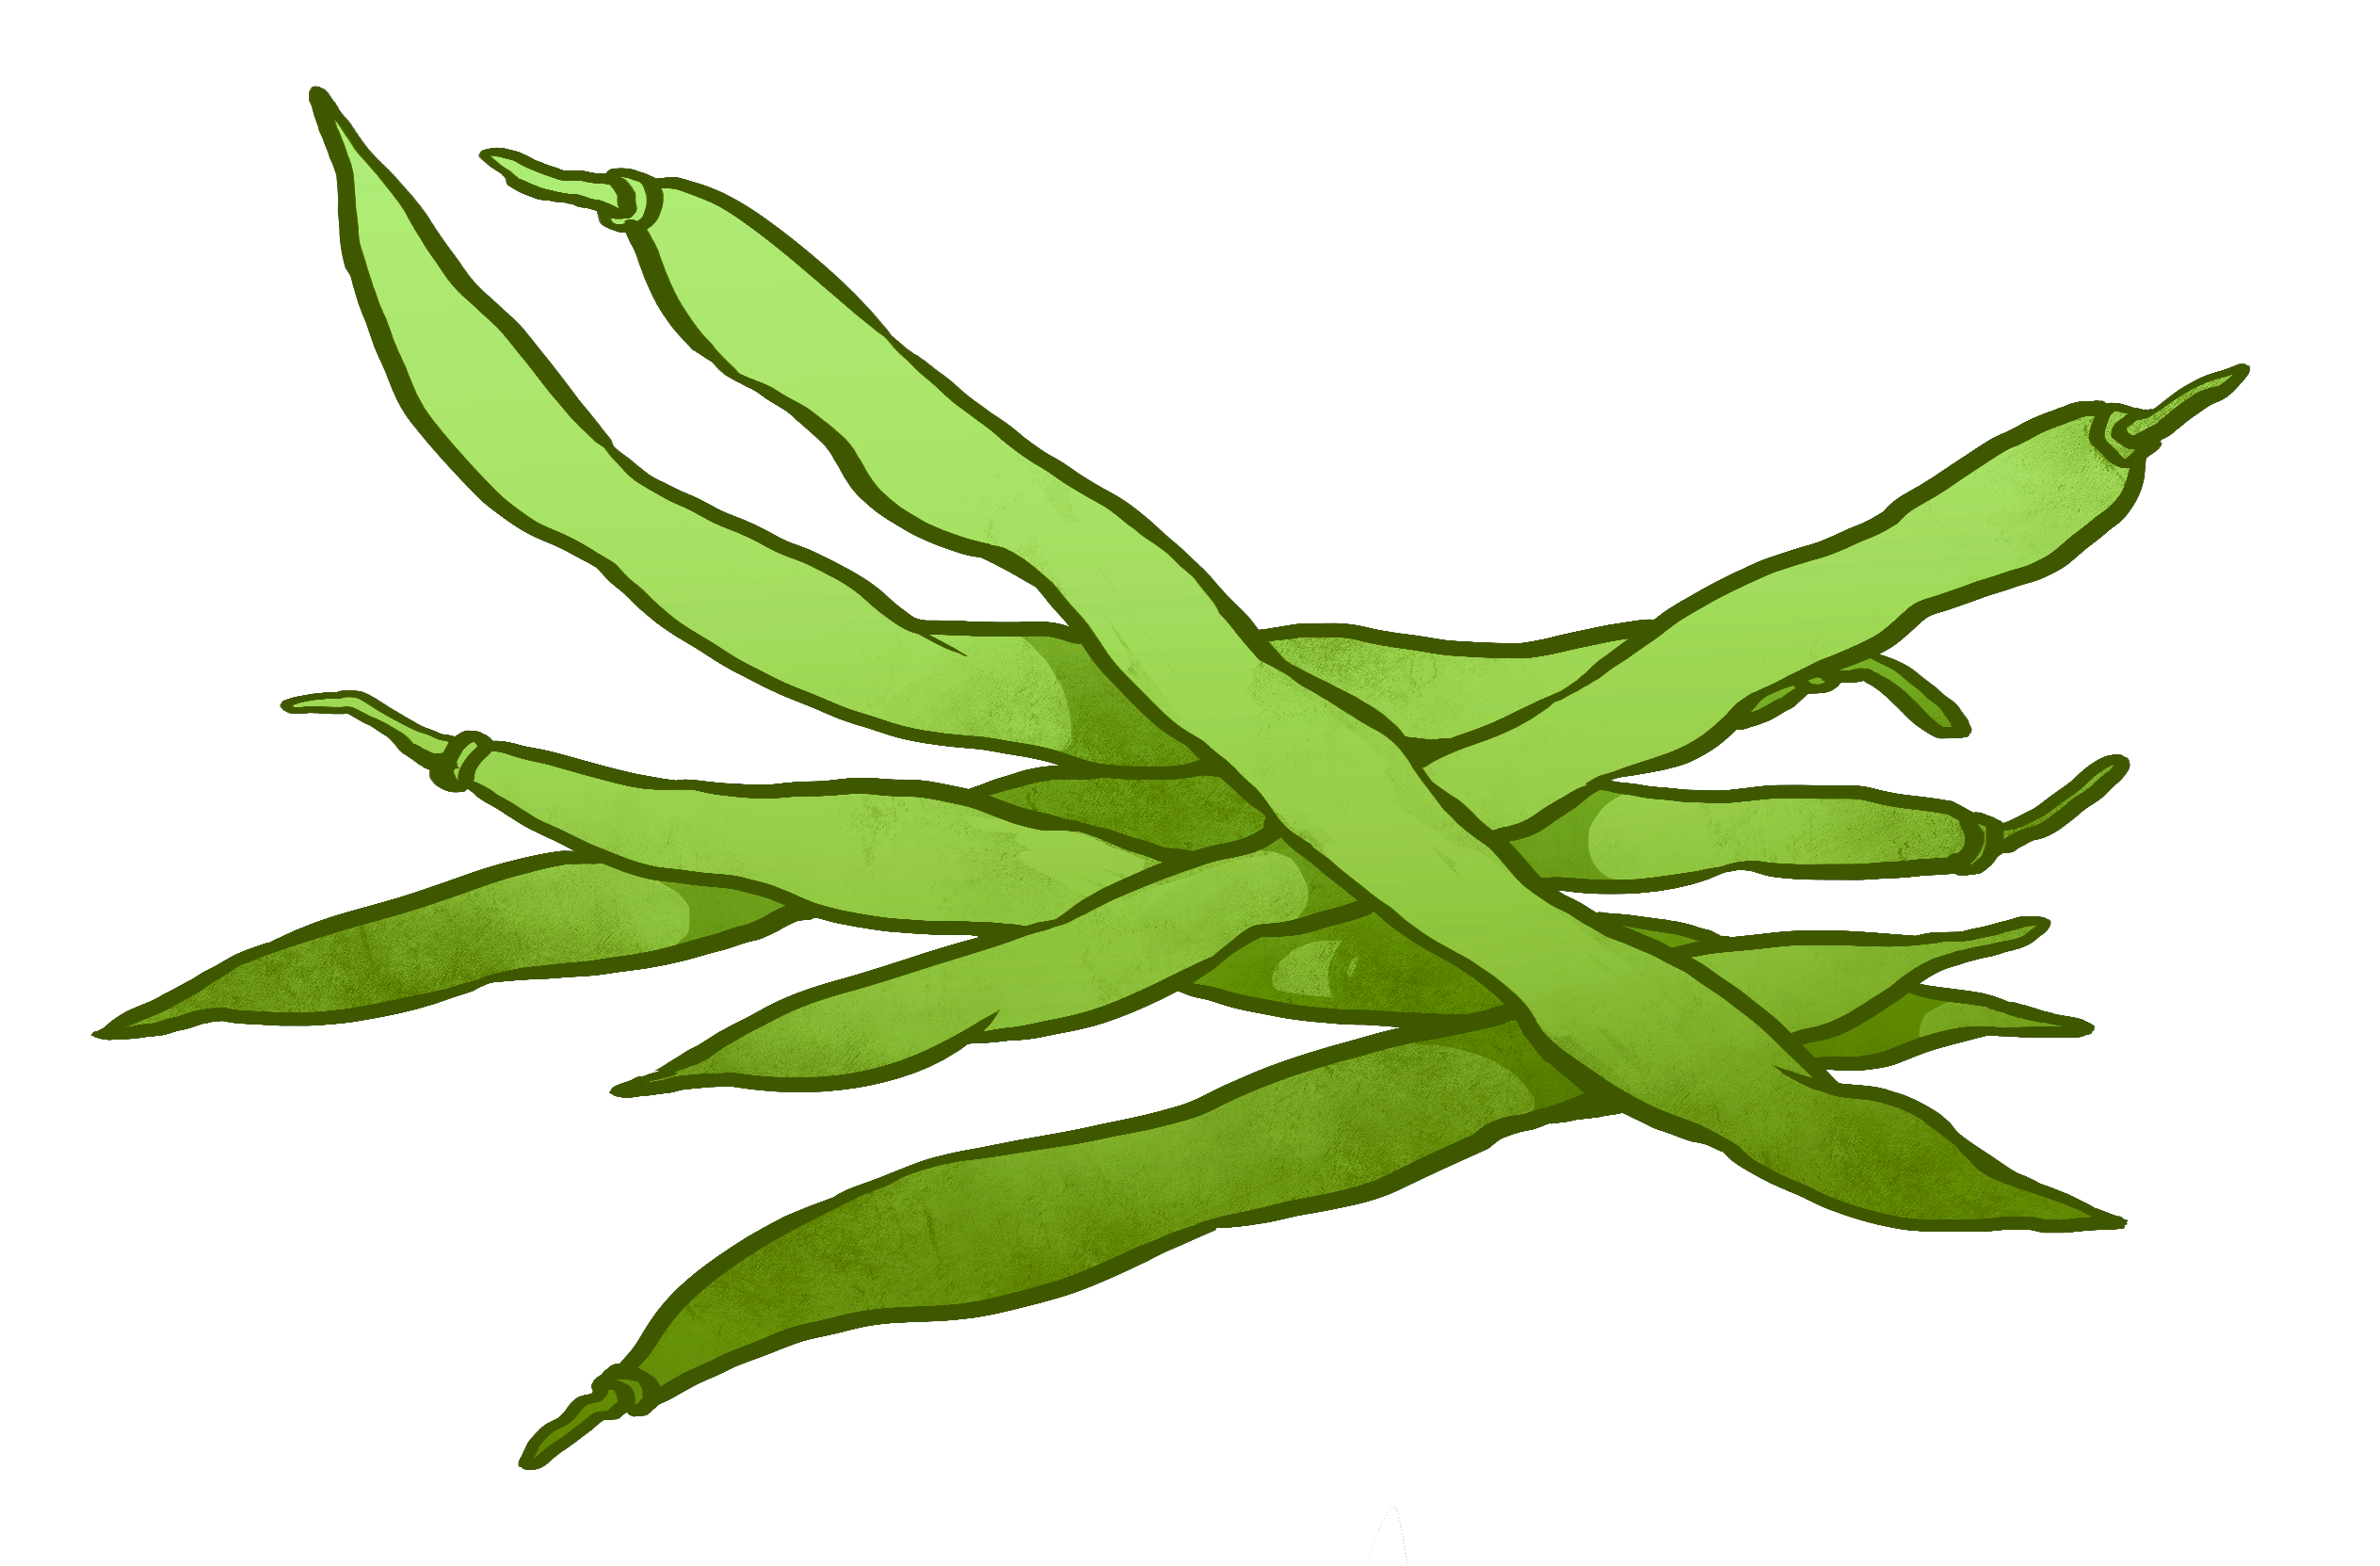 Bean clipart string bean. Beans drawing at getdrawings